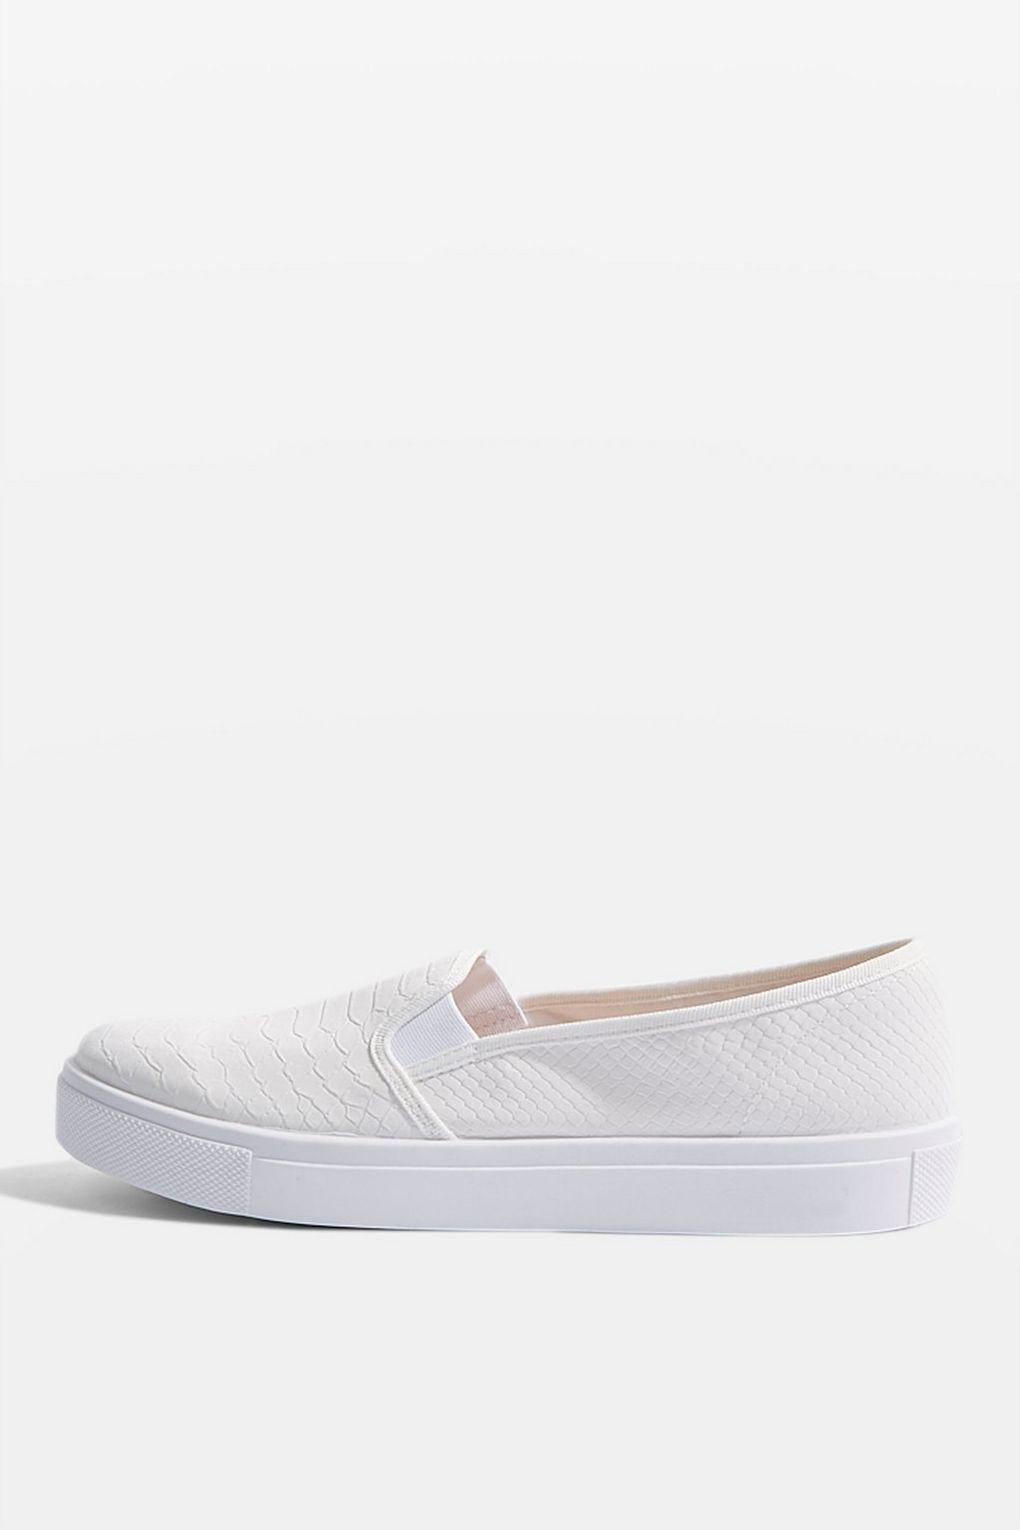 TOPSHOP Tempo Slip On Trainers in White